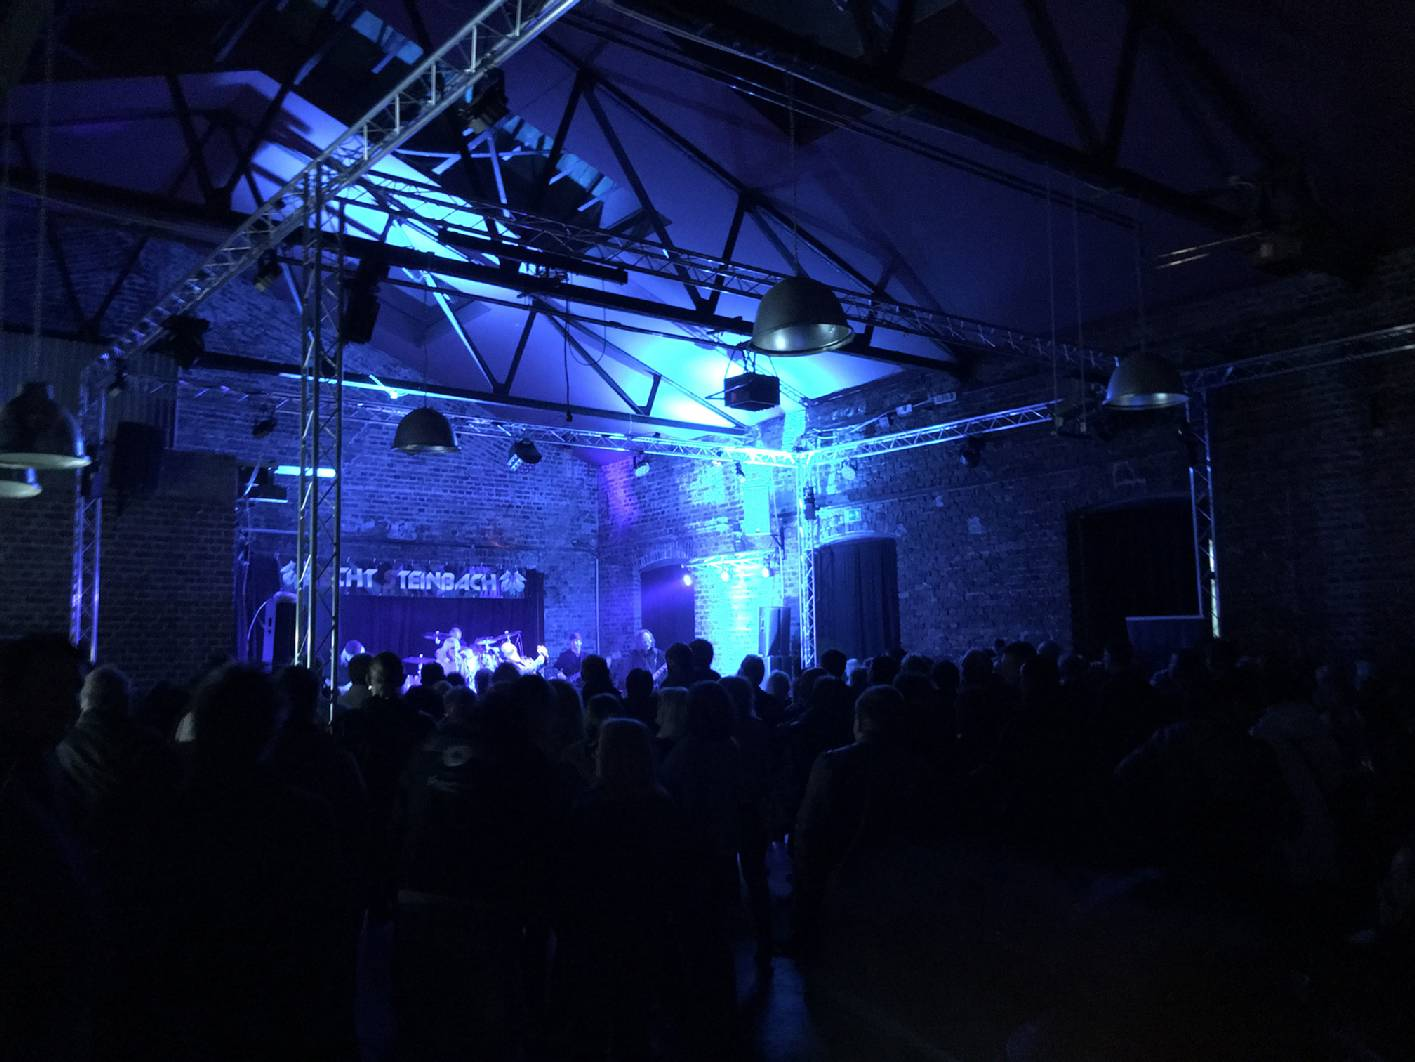 Eze Gmbh In Gr Events